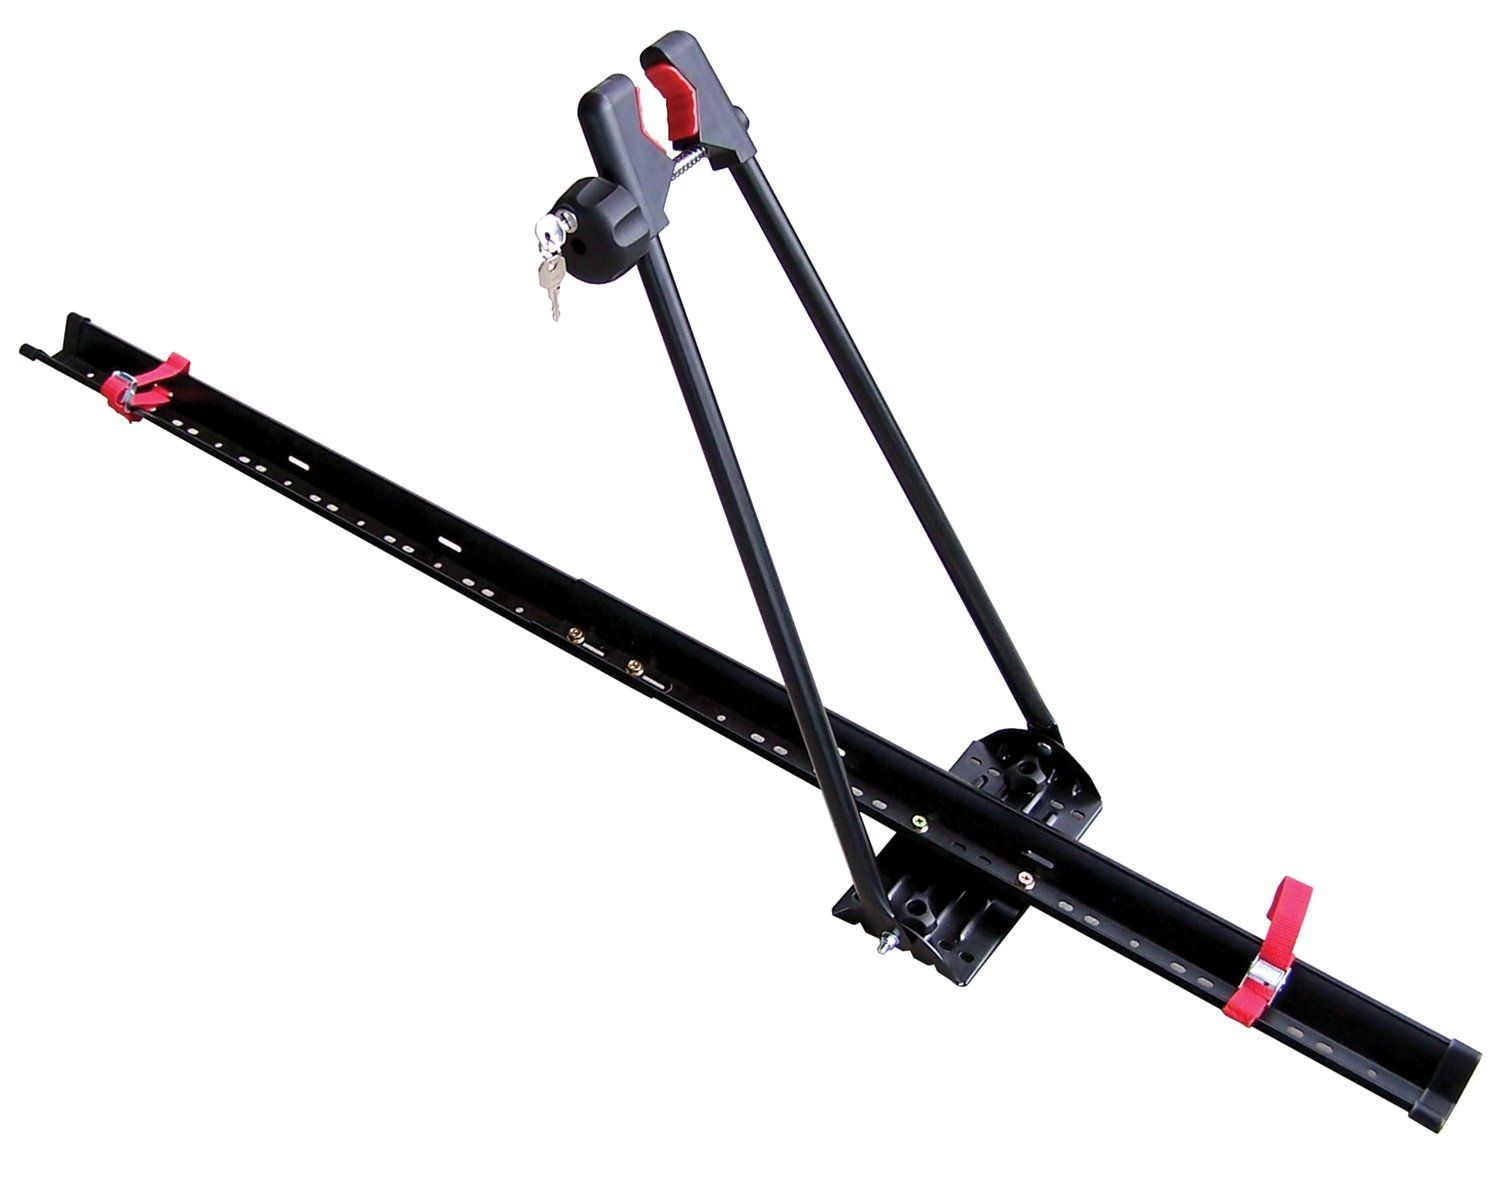 Swagman Upright Roof Rack With Images Roof Mount Bike Rack Bike Roof Rack Bike Carrier Rack